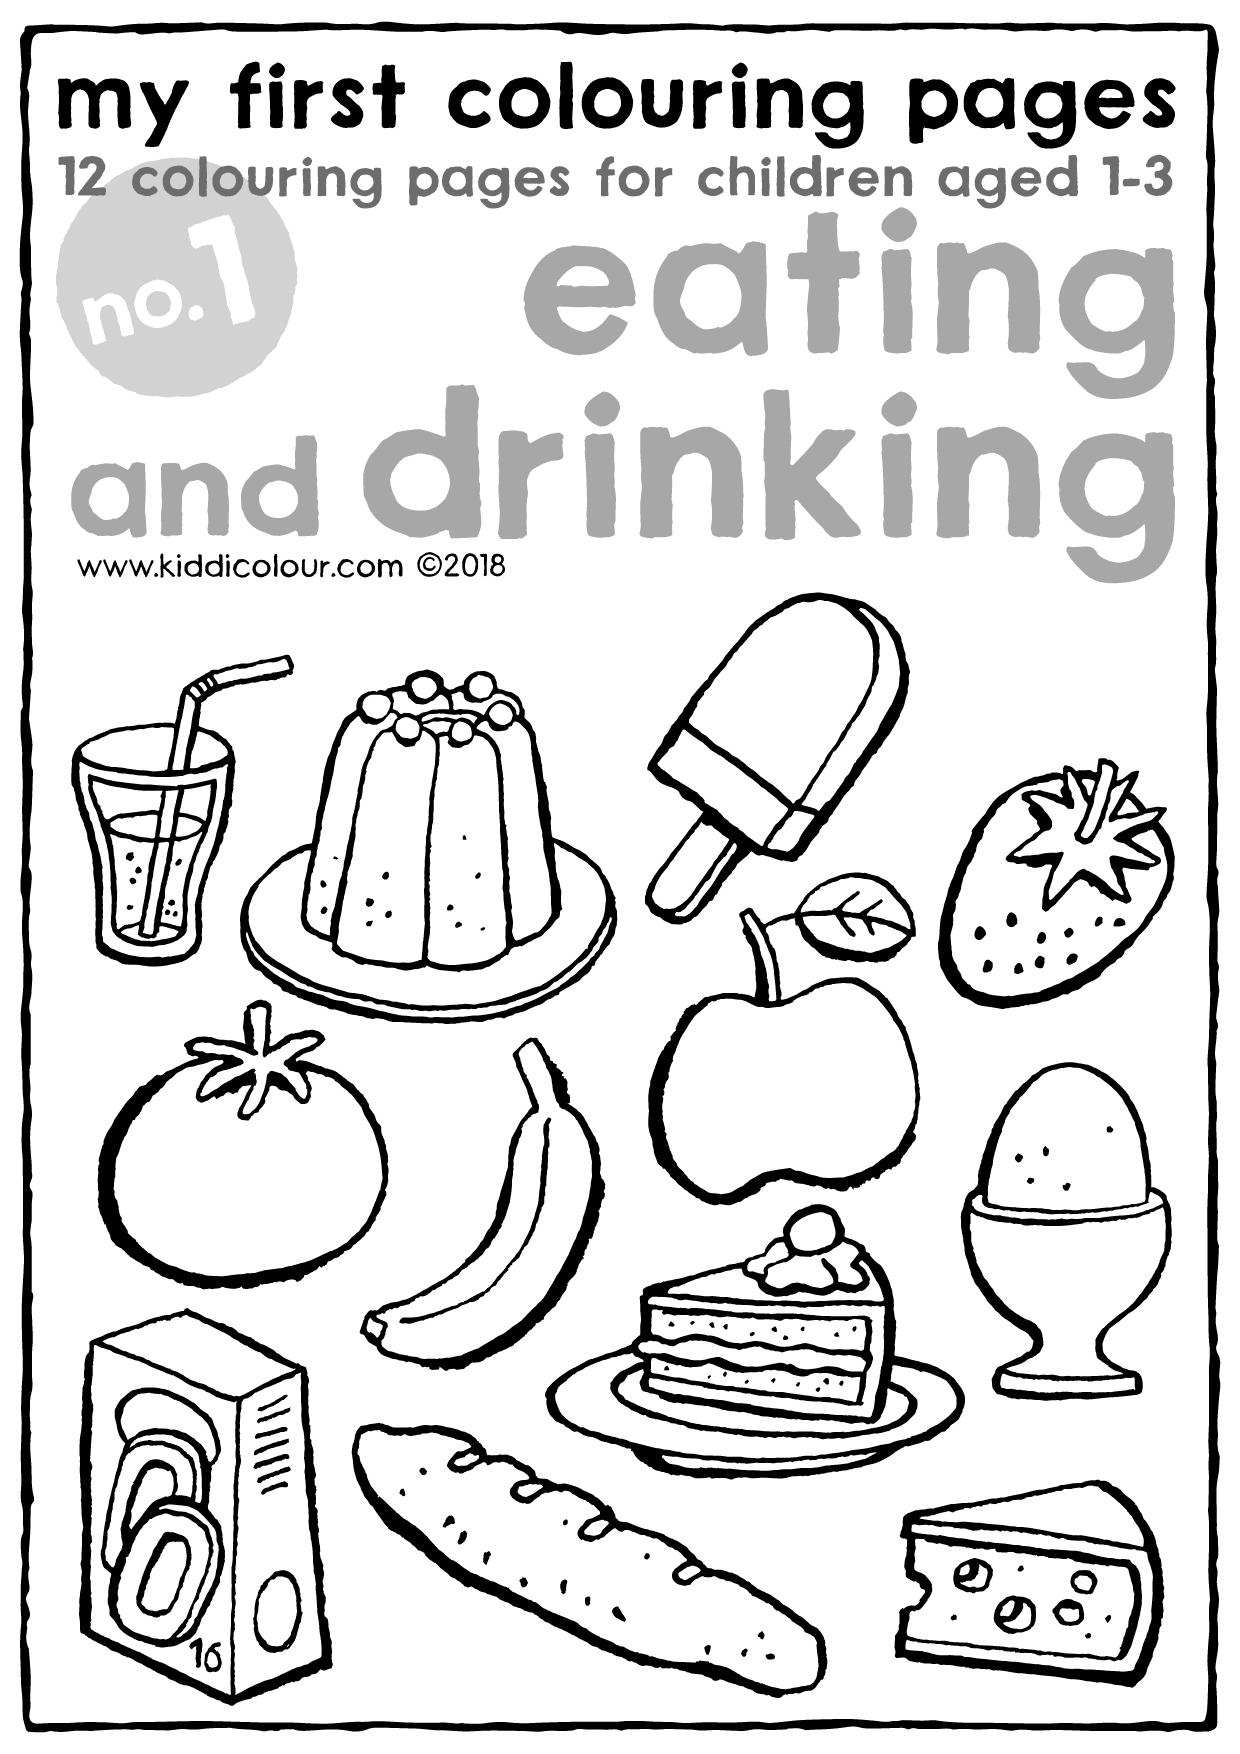 my first colouring pages no. 1: eating and drinking